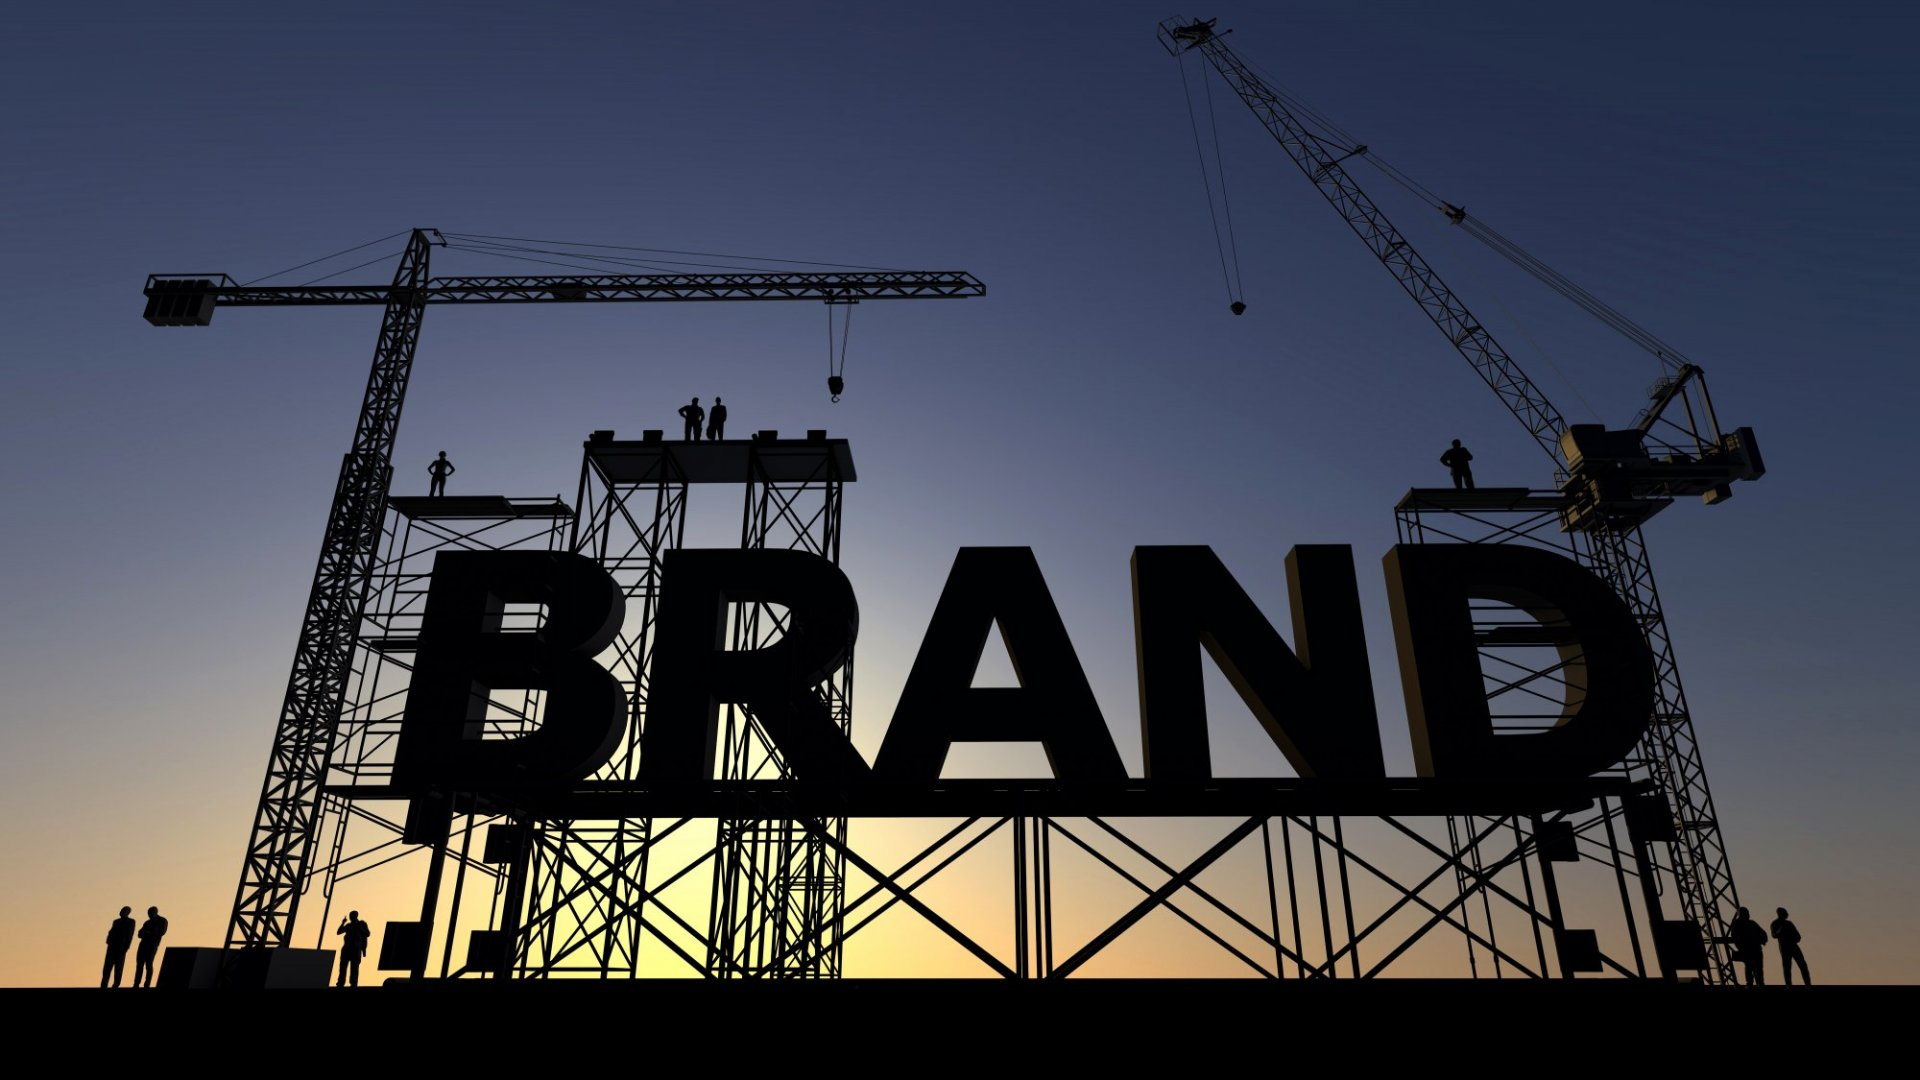 The Most Important Thing About a Successful Brand is Consistency